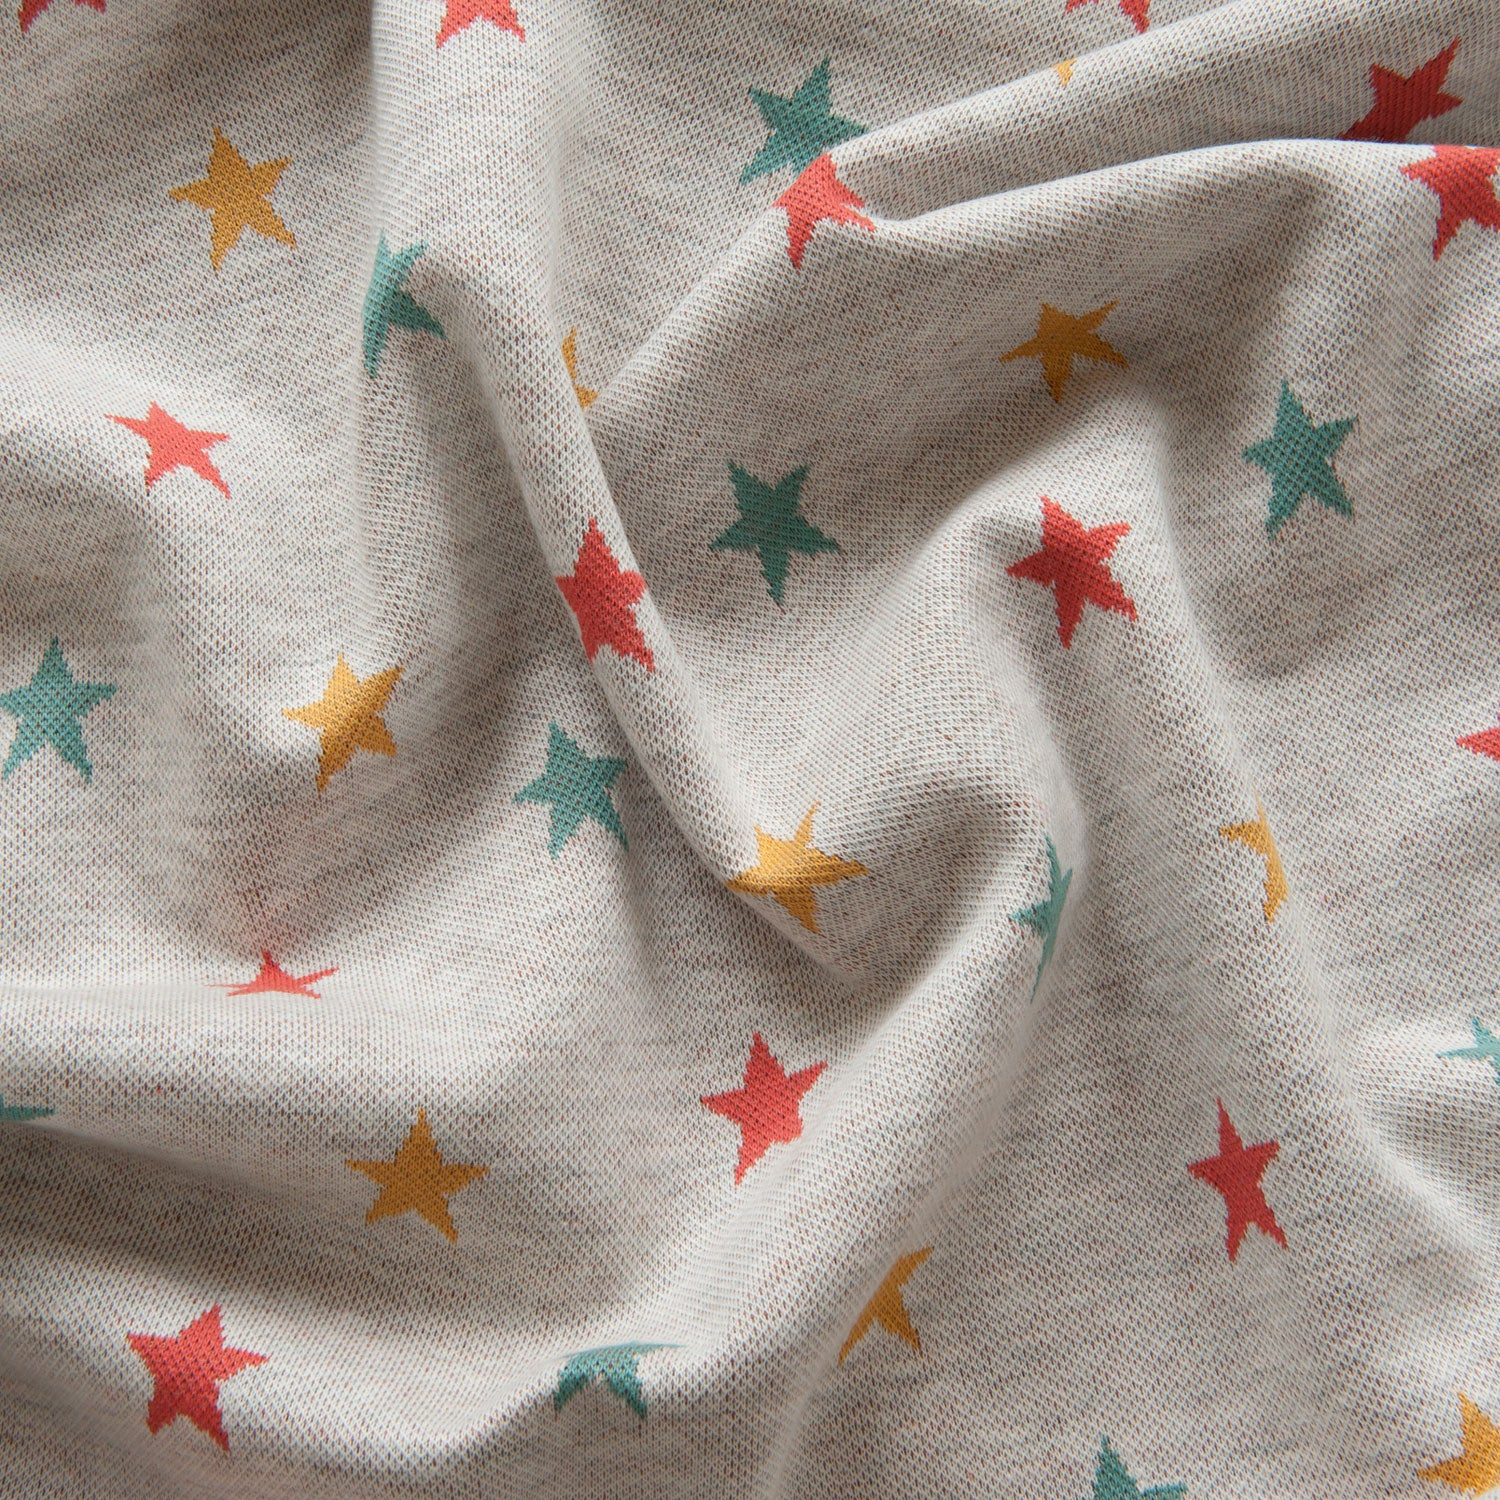 Stars Jacquard Knit in Ecru